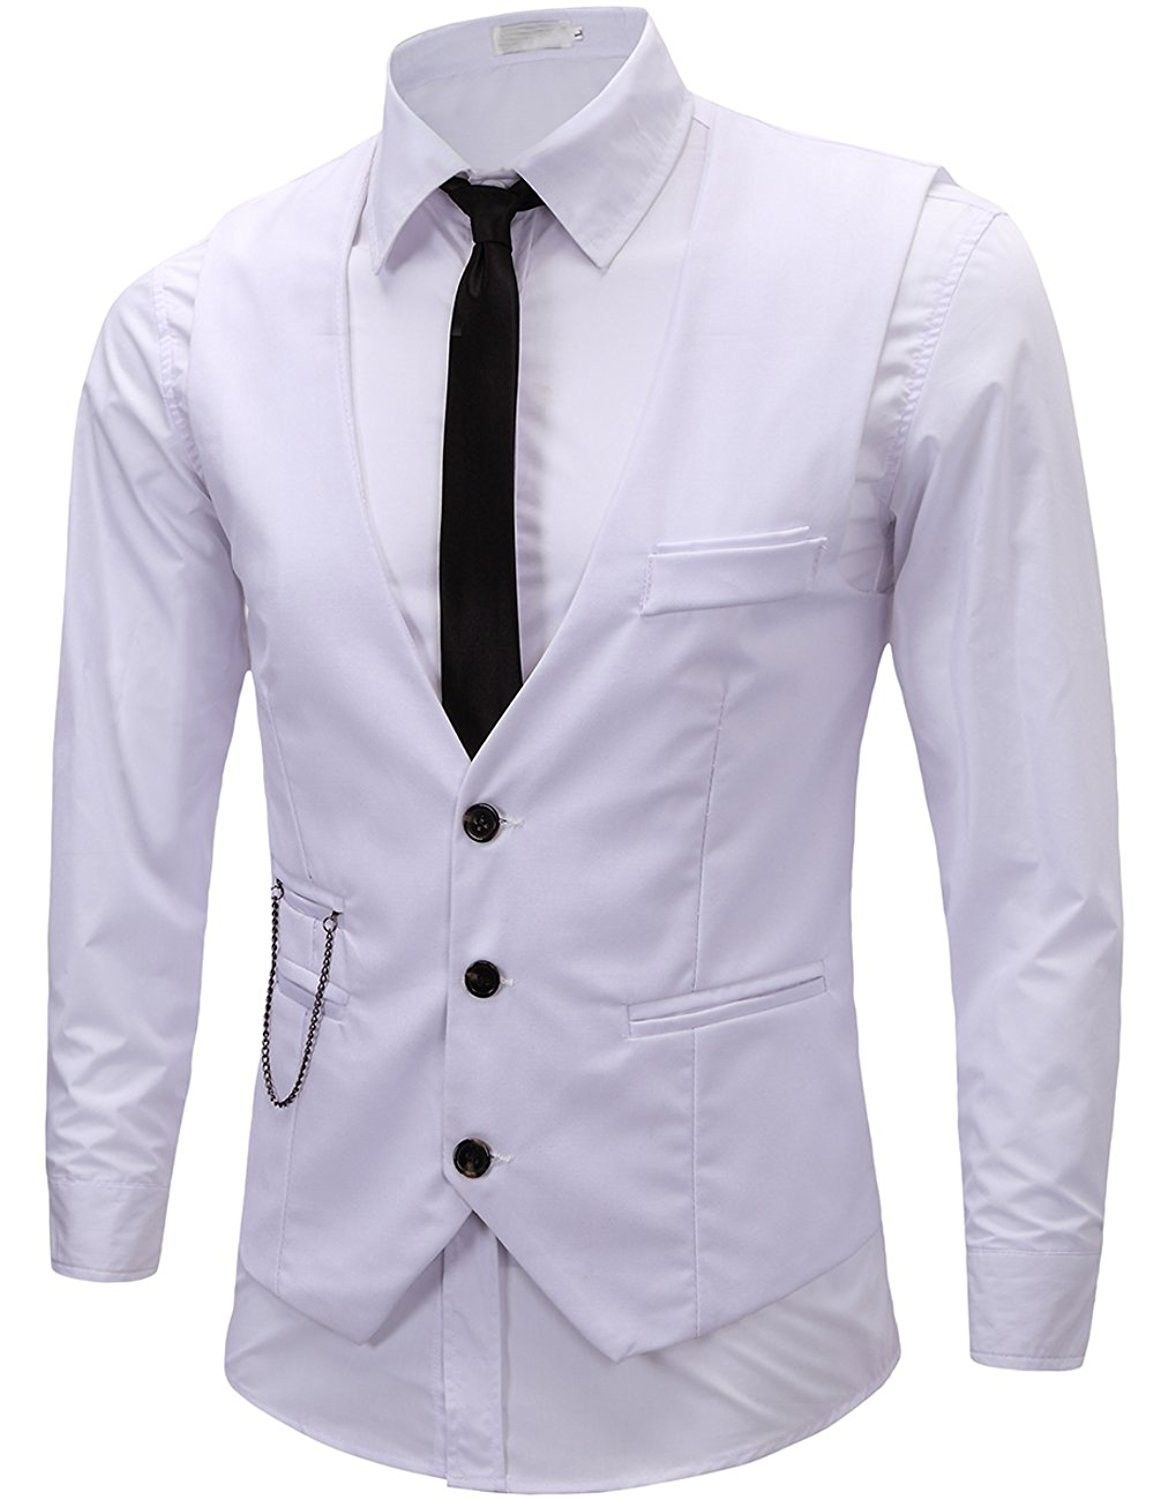 Men's Formal Dress Business Slim Fit Sleeveless Jacket Vest Waistcoat  White  CF1857792CL is part of Clothes Mens Formal - Color White SKU CF1857792CL Giftwrap Available